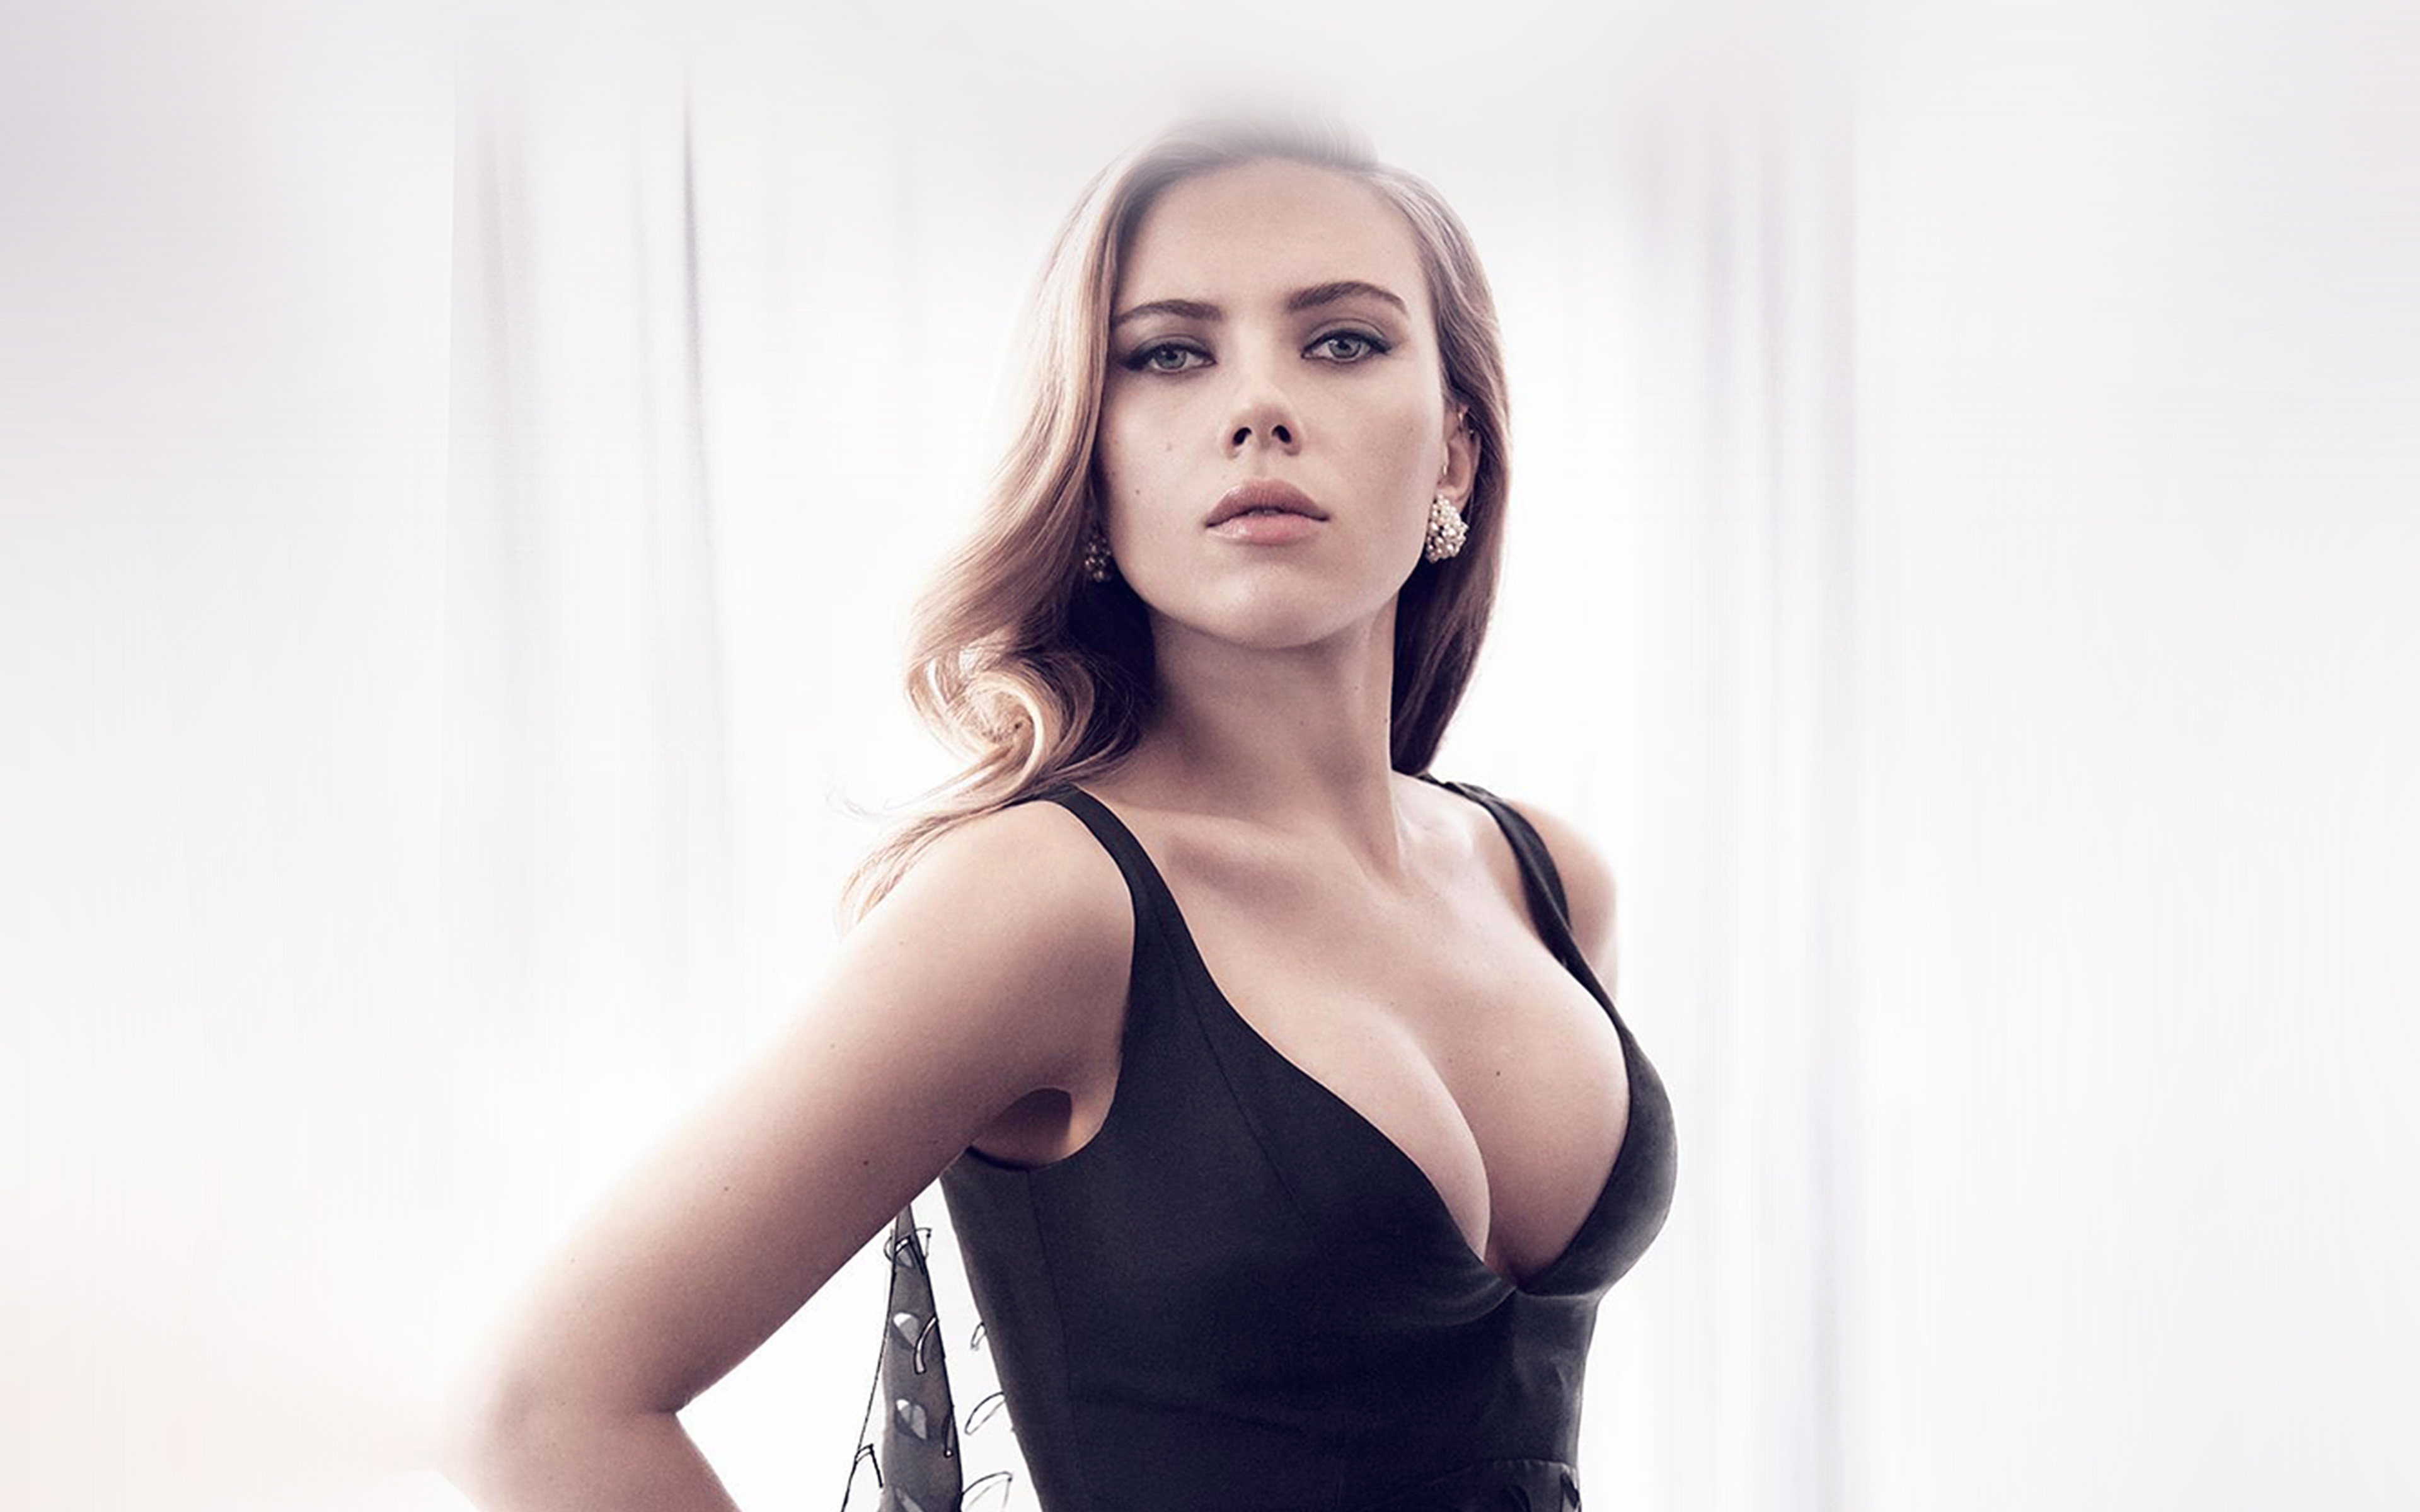 Scarlett Johanson jhot - Scarlett Johansson Net Worth, Awards, Movies and Private Life, Pictures and Wallpapers